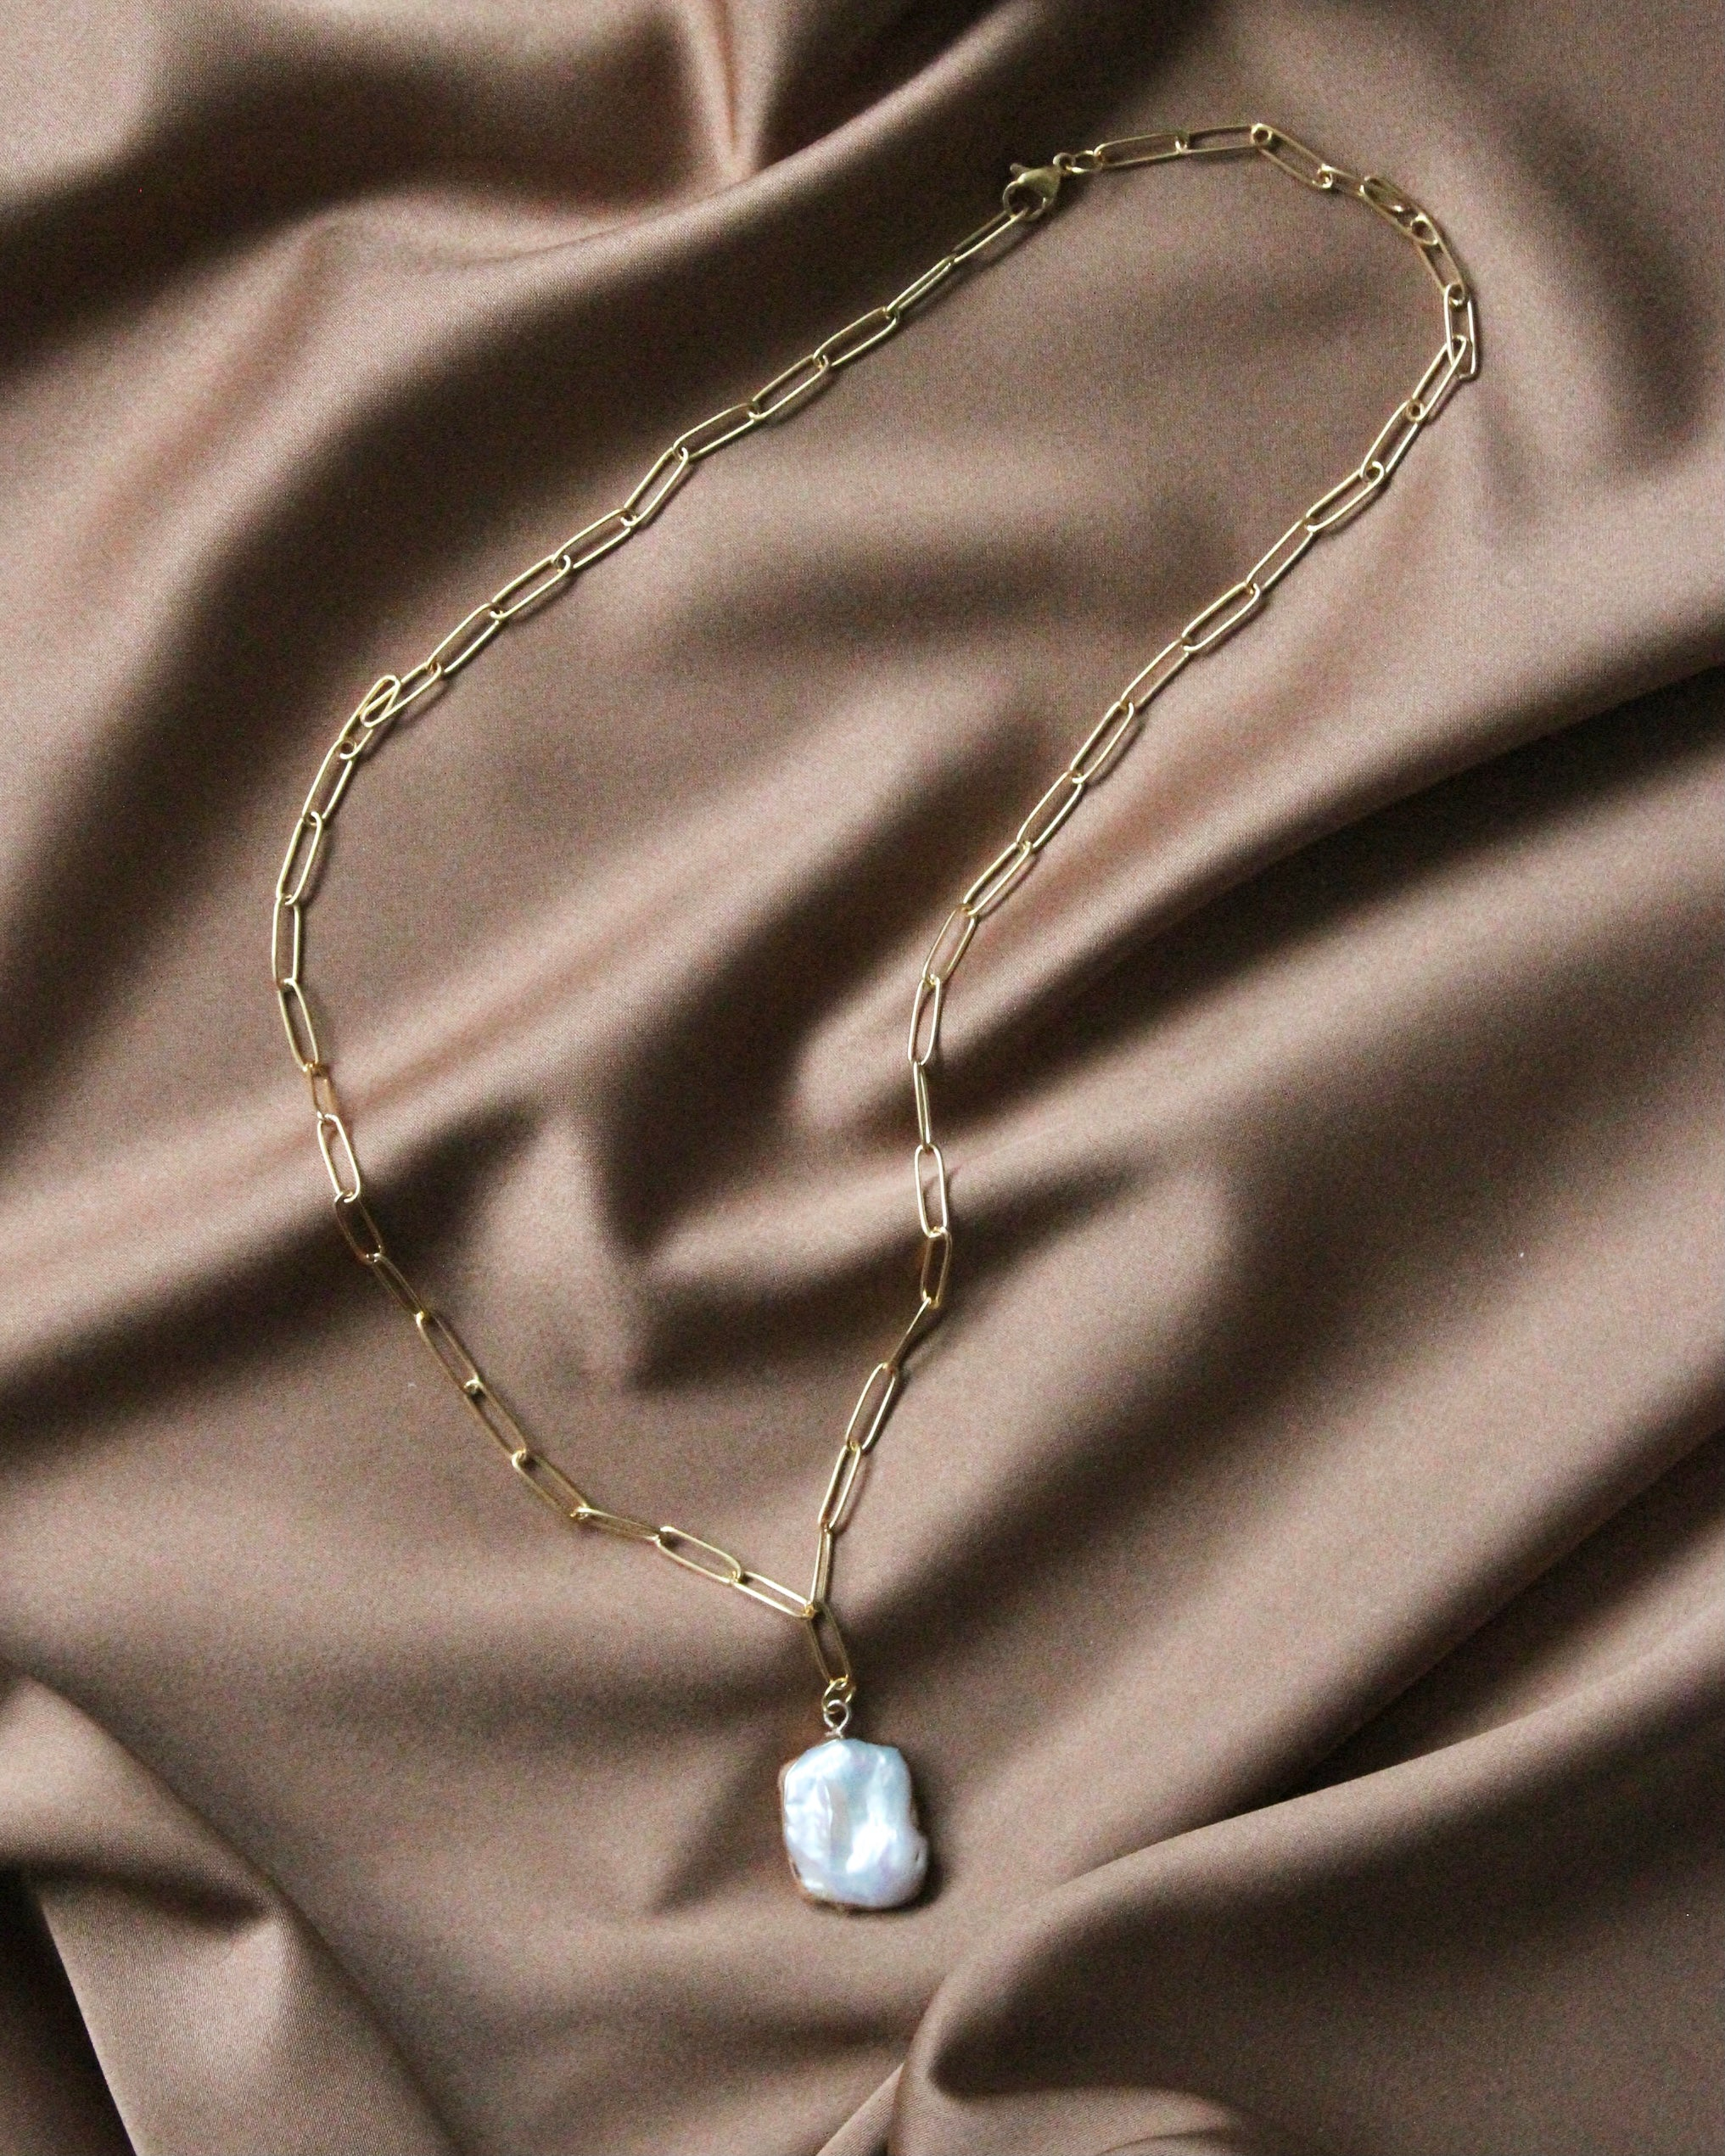 Pearl Chain Necklace Merrith